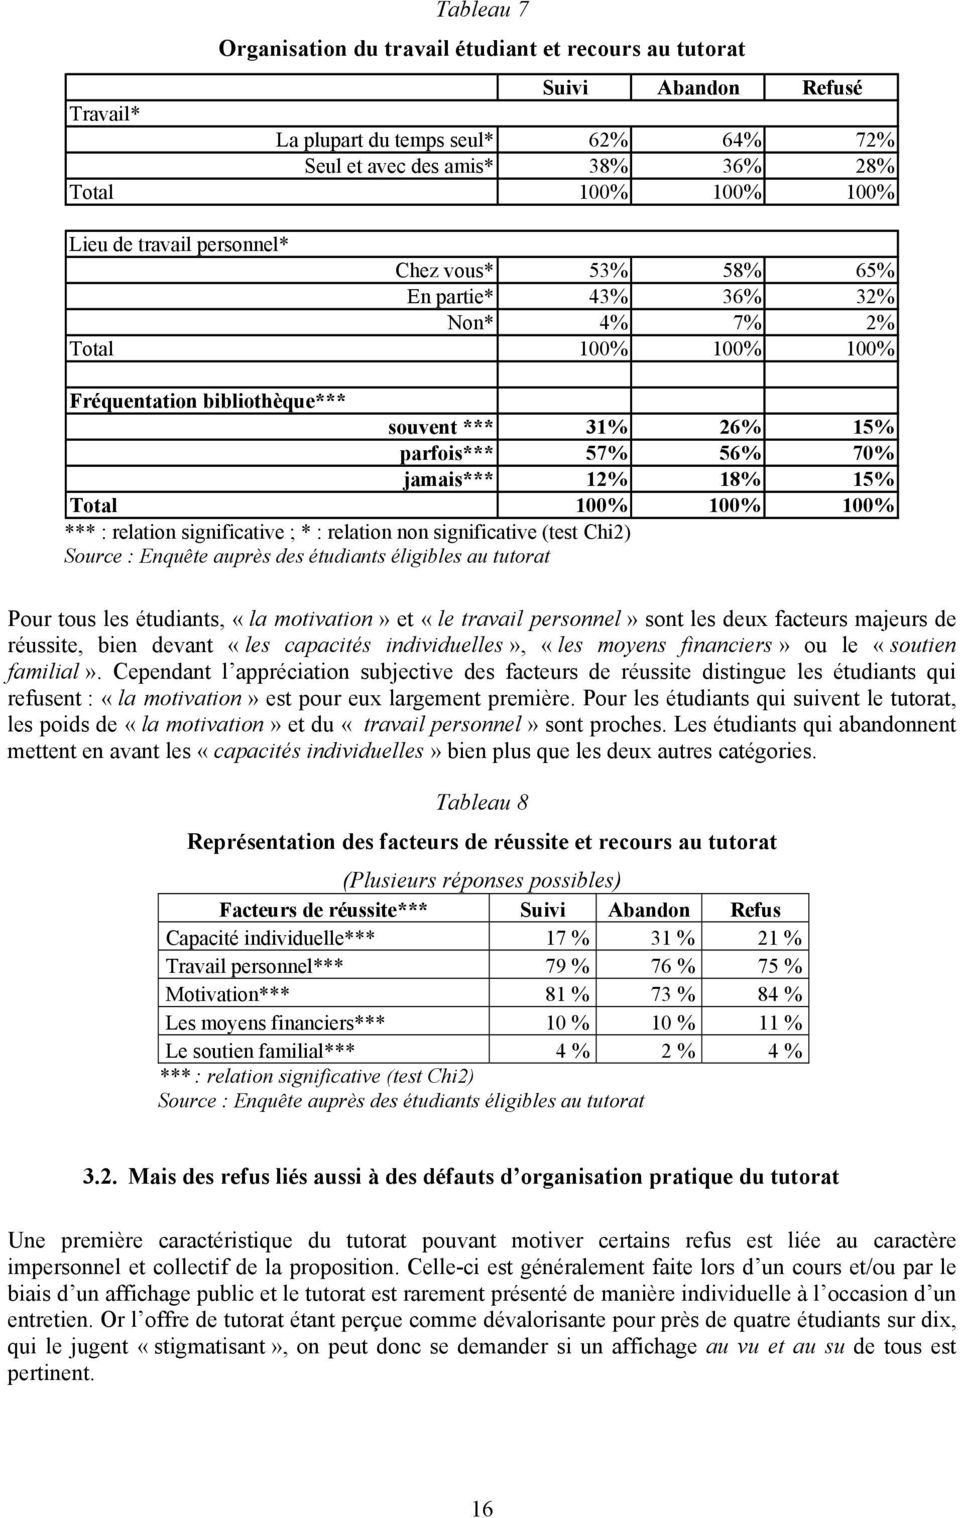 Total 100% 100% *** : relation significative ; * : relation non significative (test Chi2) 100% Source : Enquête auprès des étudiants éligibles au tutorat Pour tous les étudiants, «la motivation» et